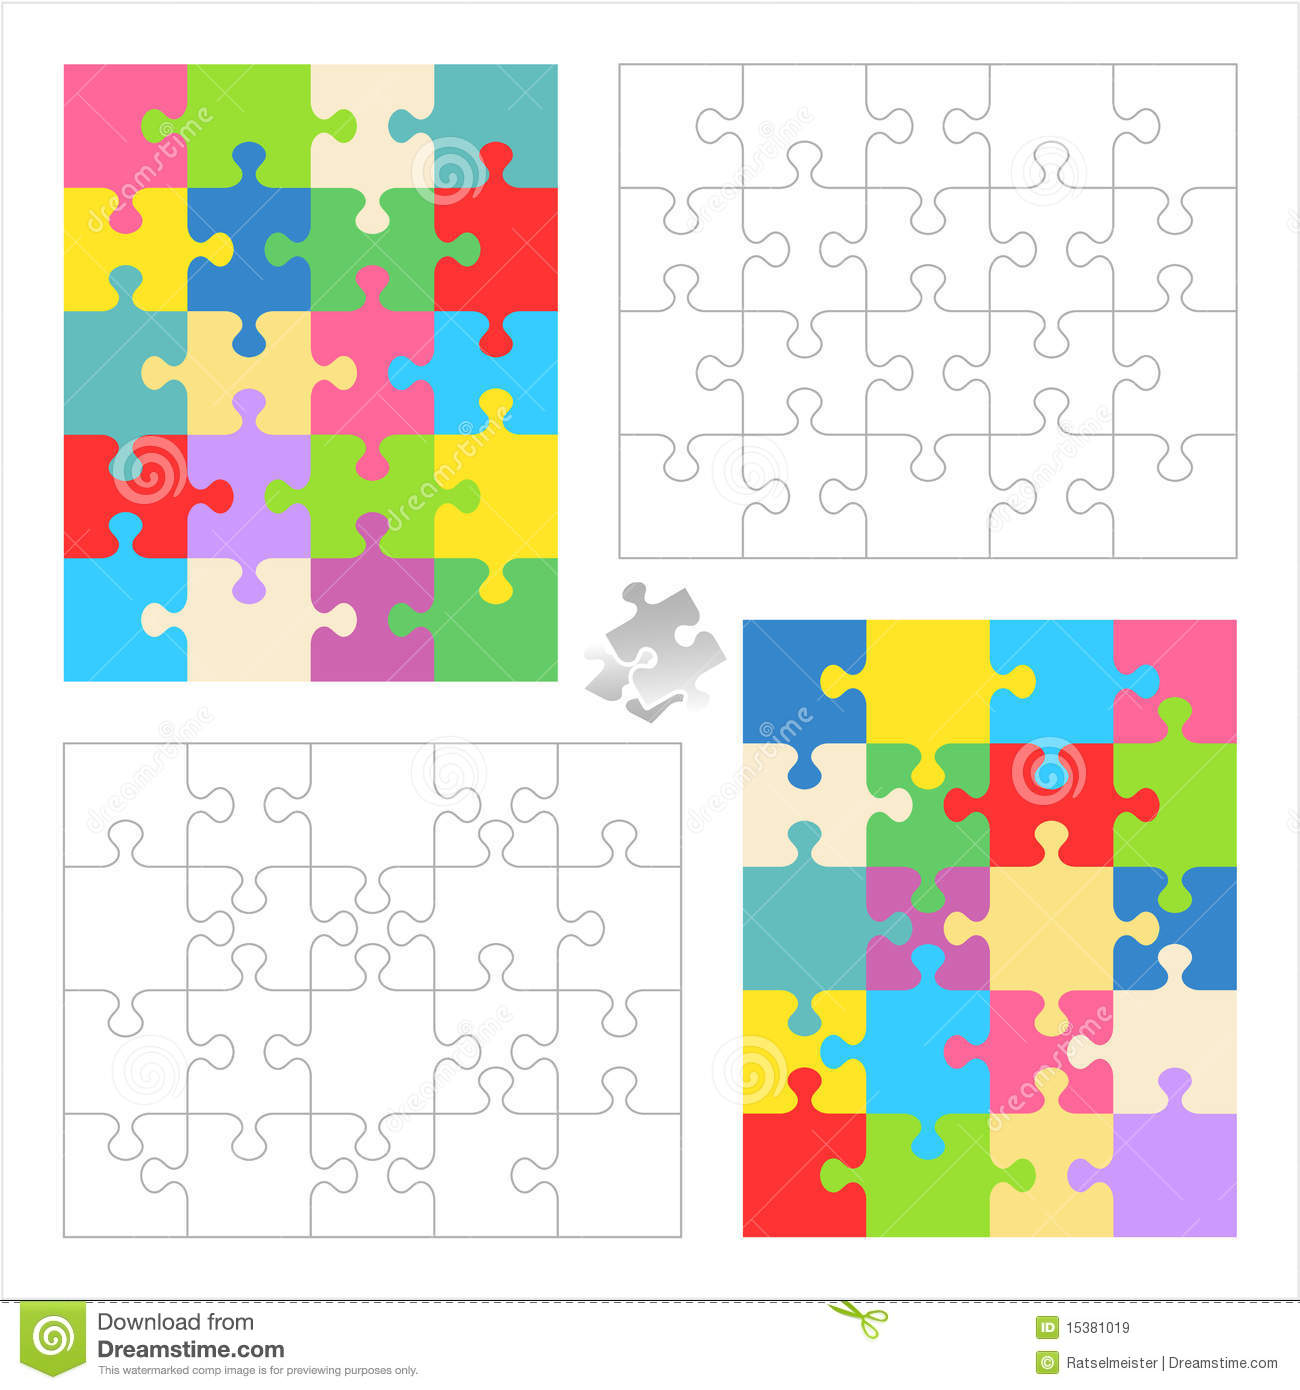 File name jigsaw puzzle blank templates colorful patterns 15381019